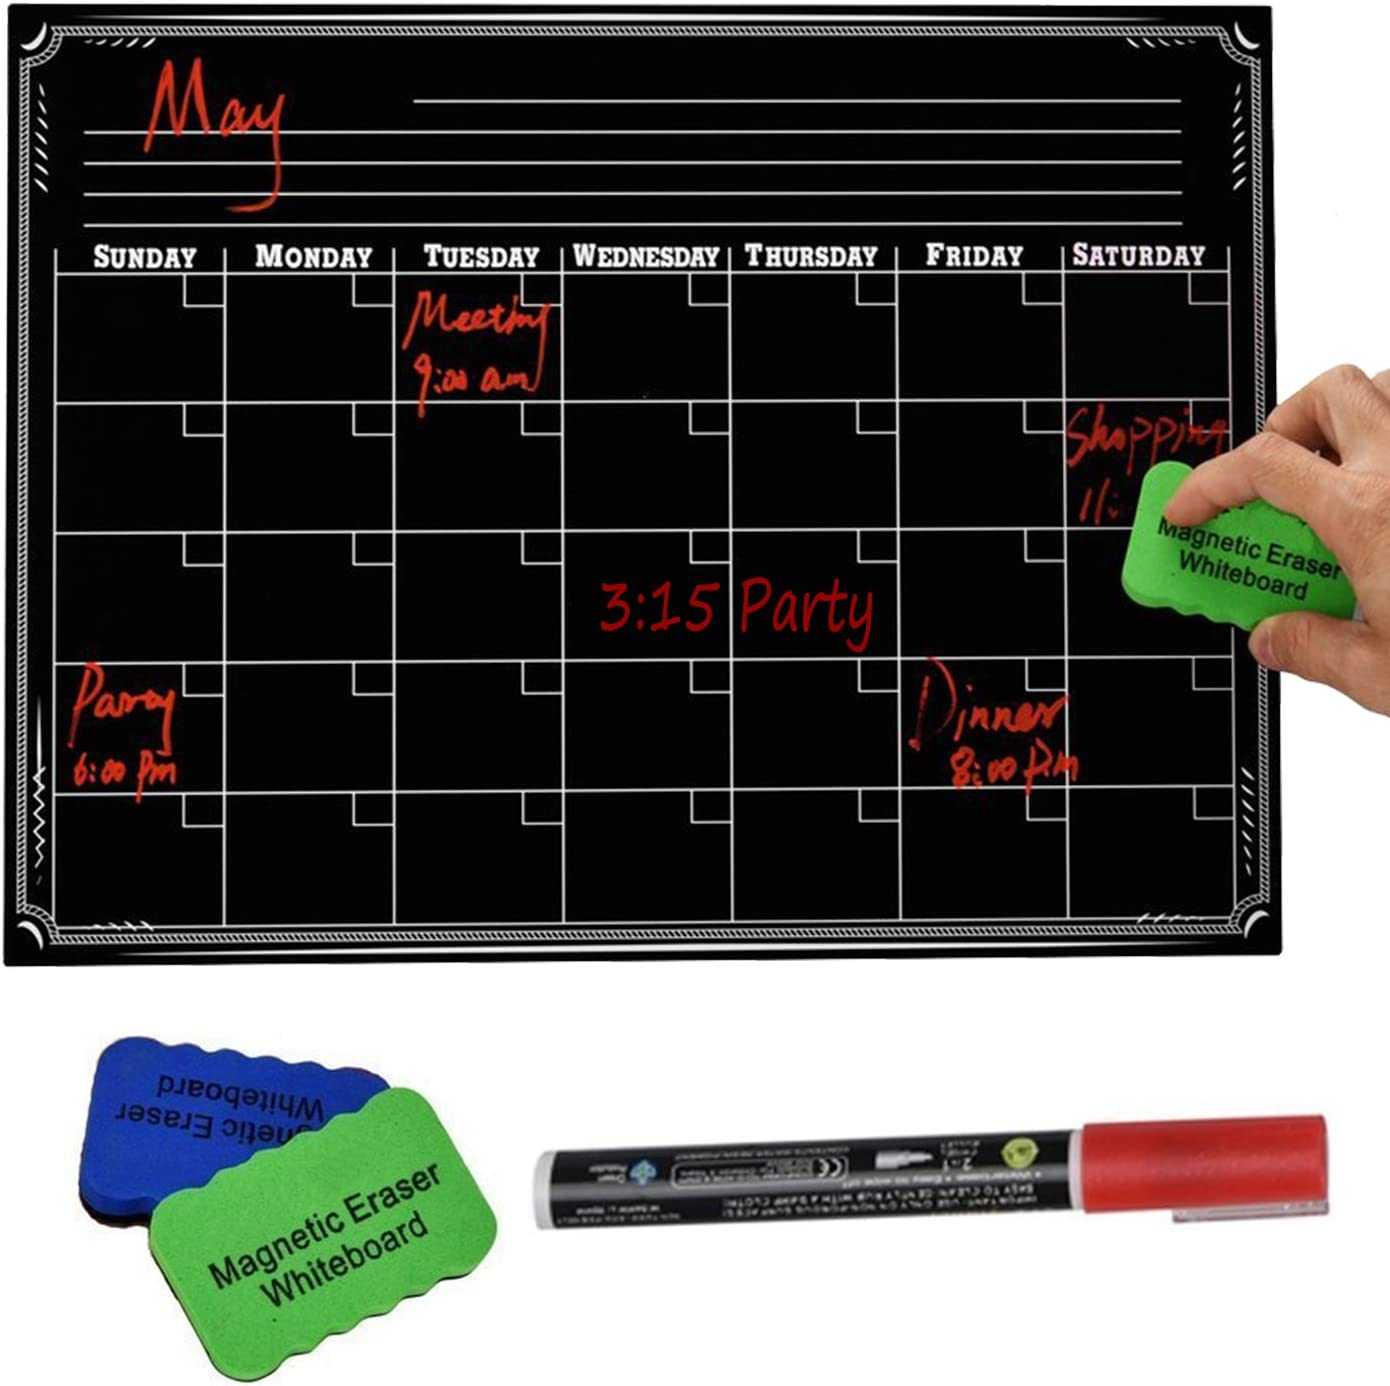 "PAPRMA Magnetic Dry Erase Calendar, Refrigerator Chalkboard, Monthly Calendar Set for Kitchen Refrigerator, 16"" x 12"" Large Magnetic Black Board"